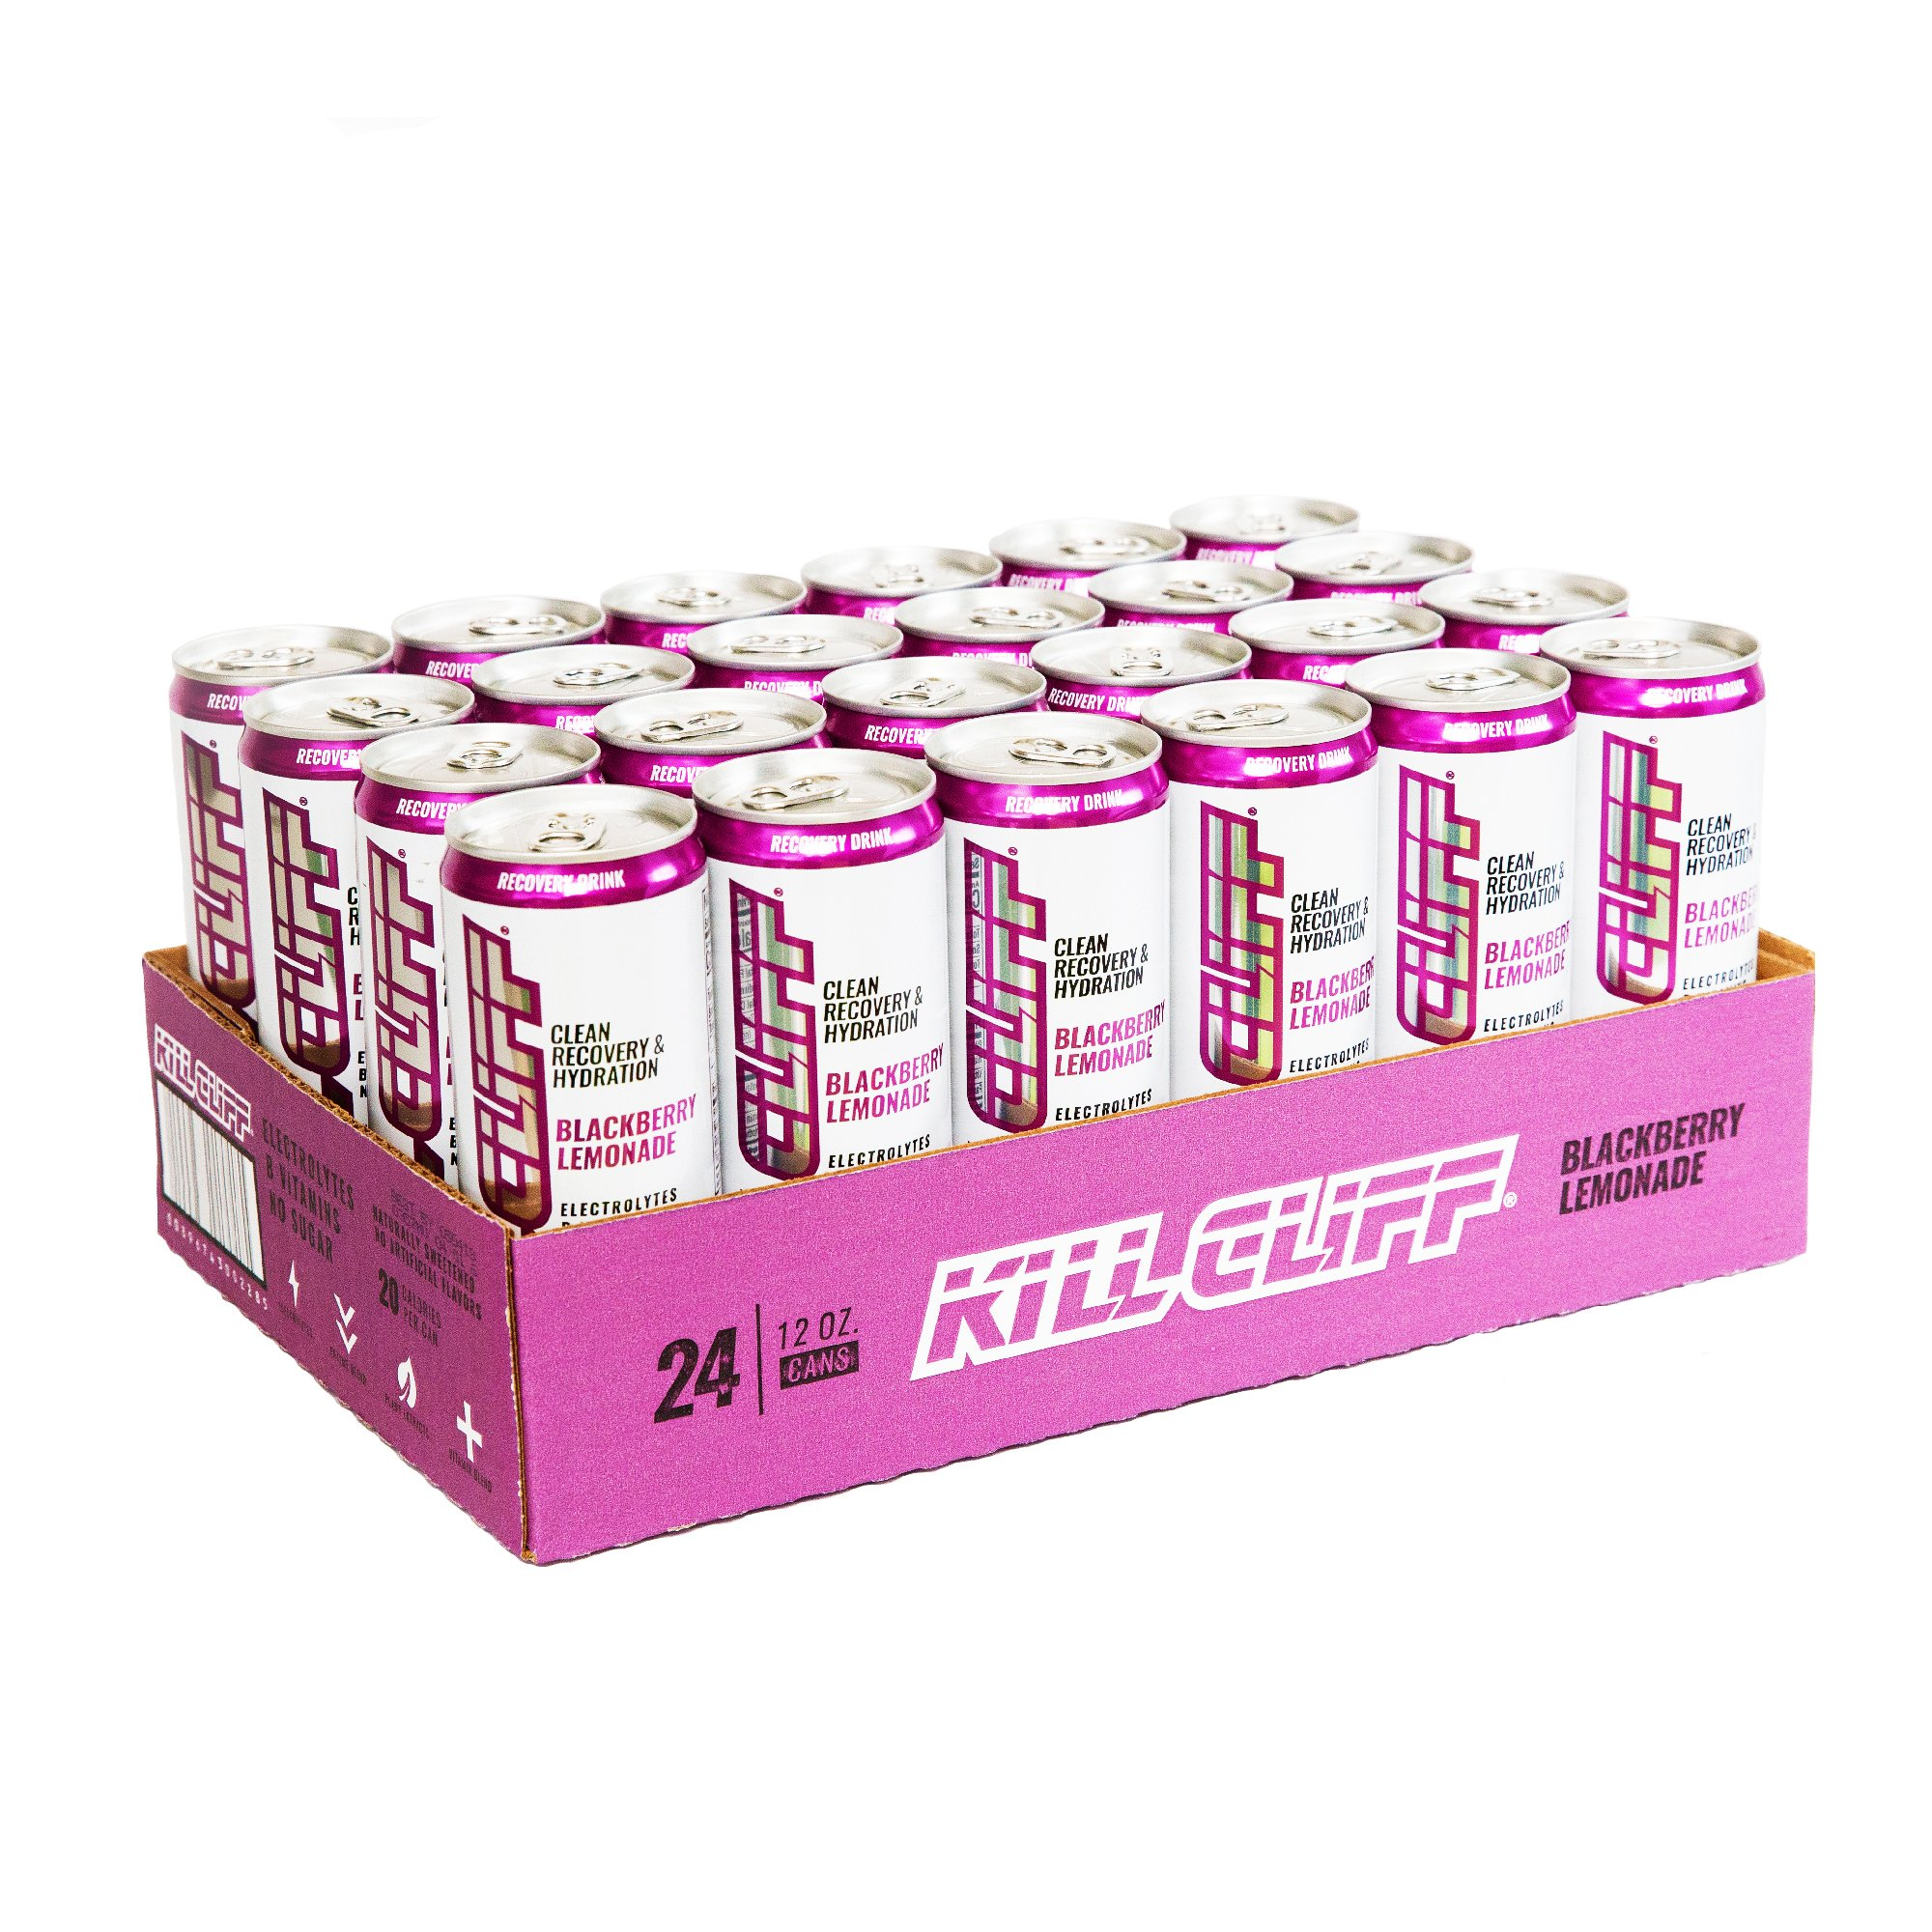 Kill Cliff Electrolyte Recovery Drink, Blackberry Lemonade, 12 Ounce, 24 Count; Low Cal, No Sugar